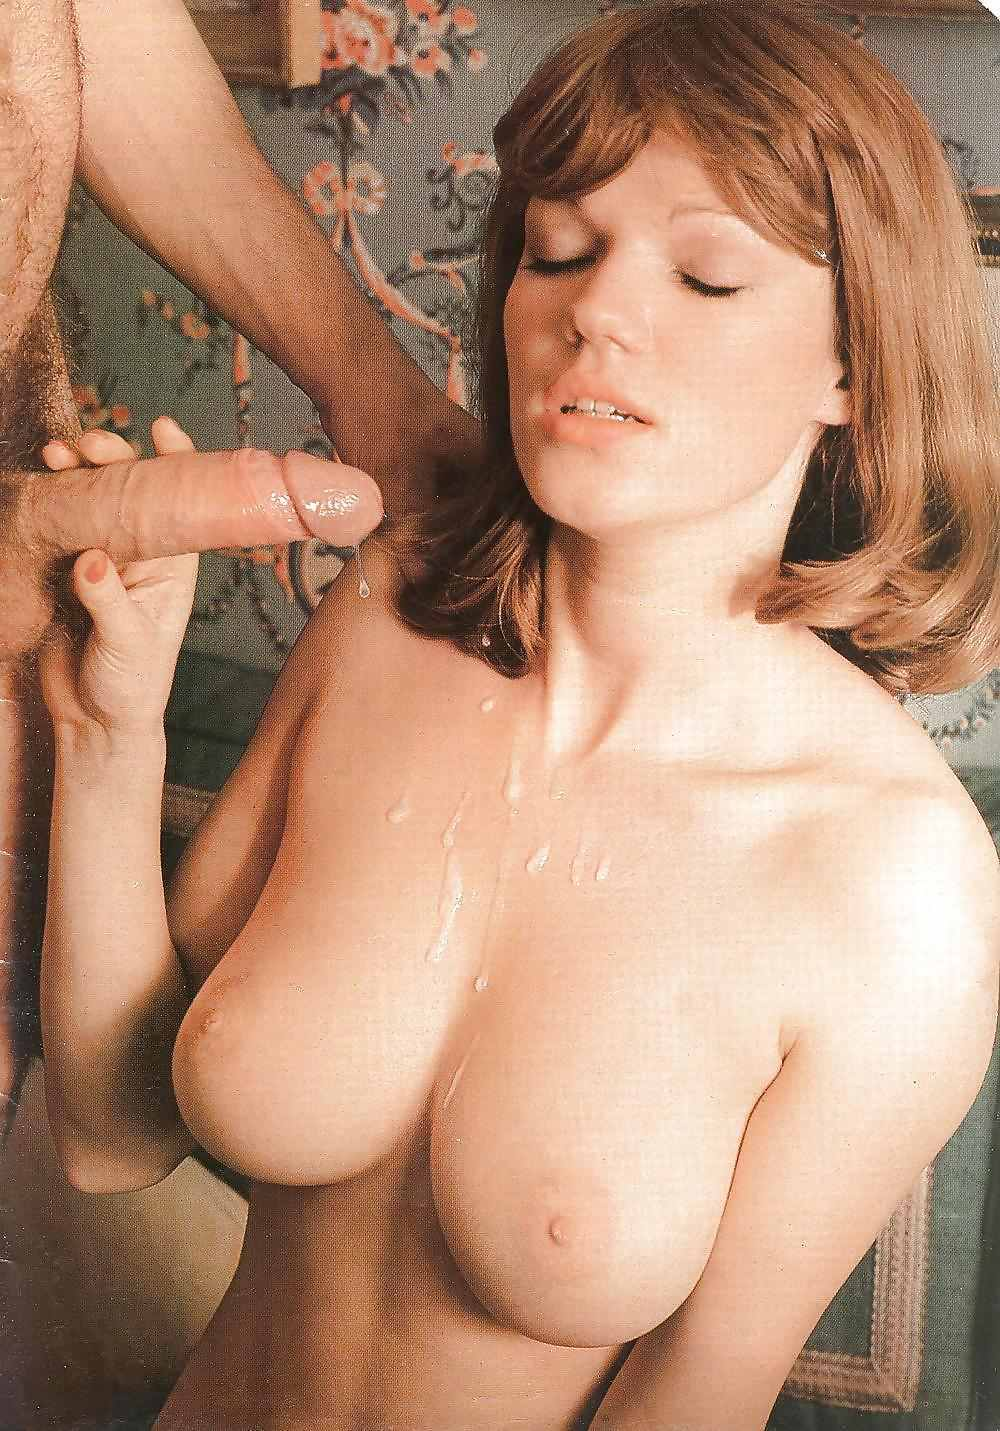 Blow and cum sexy think